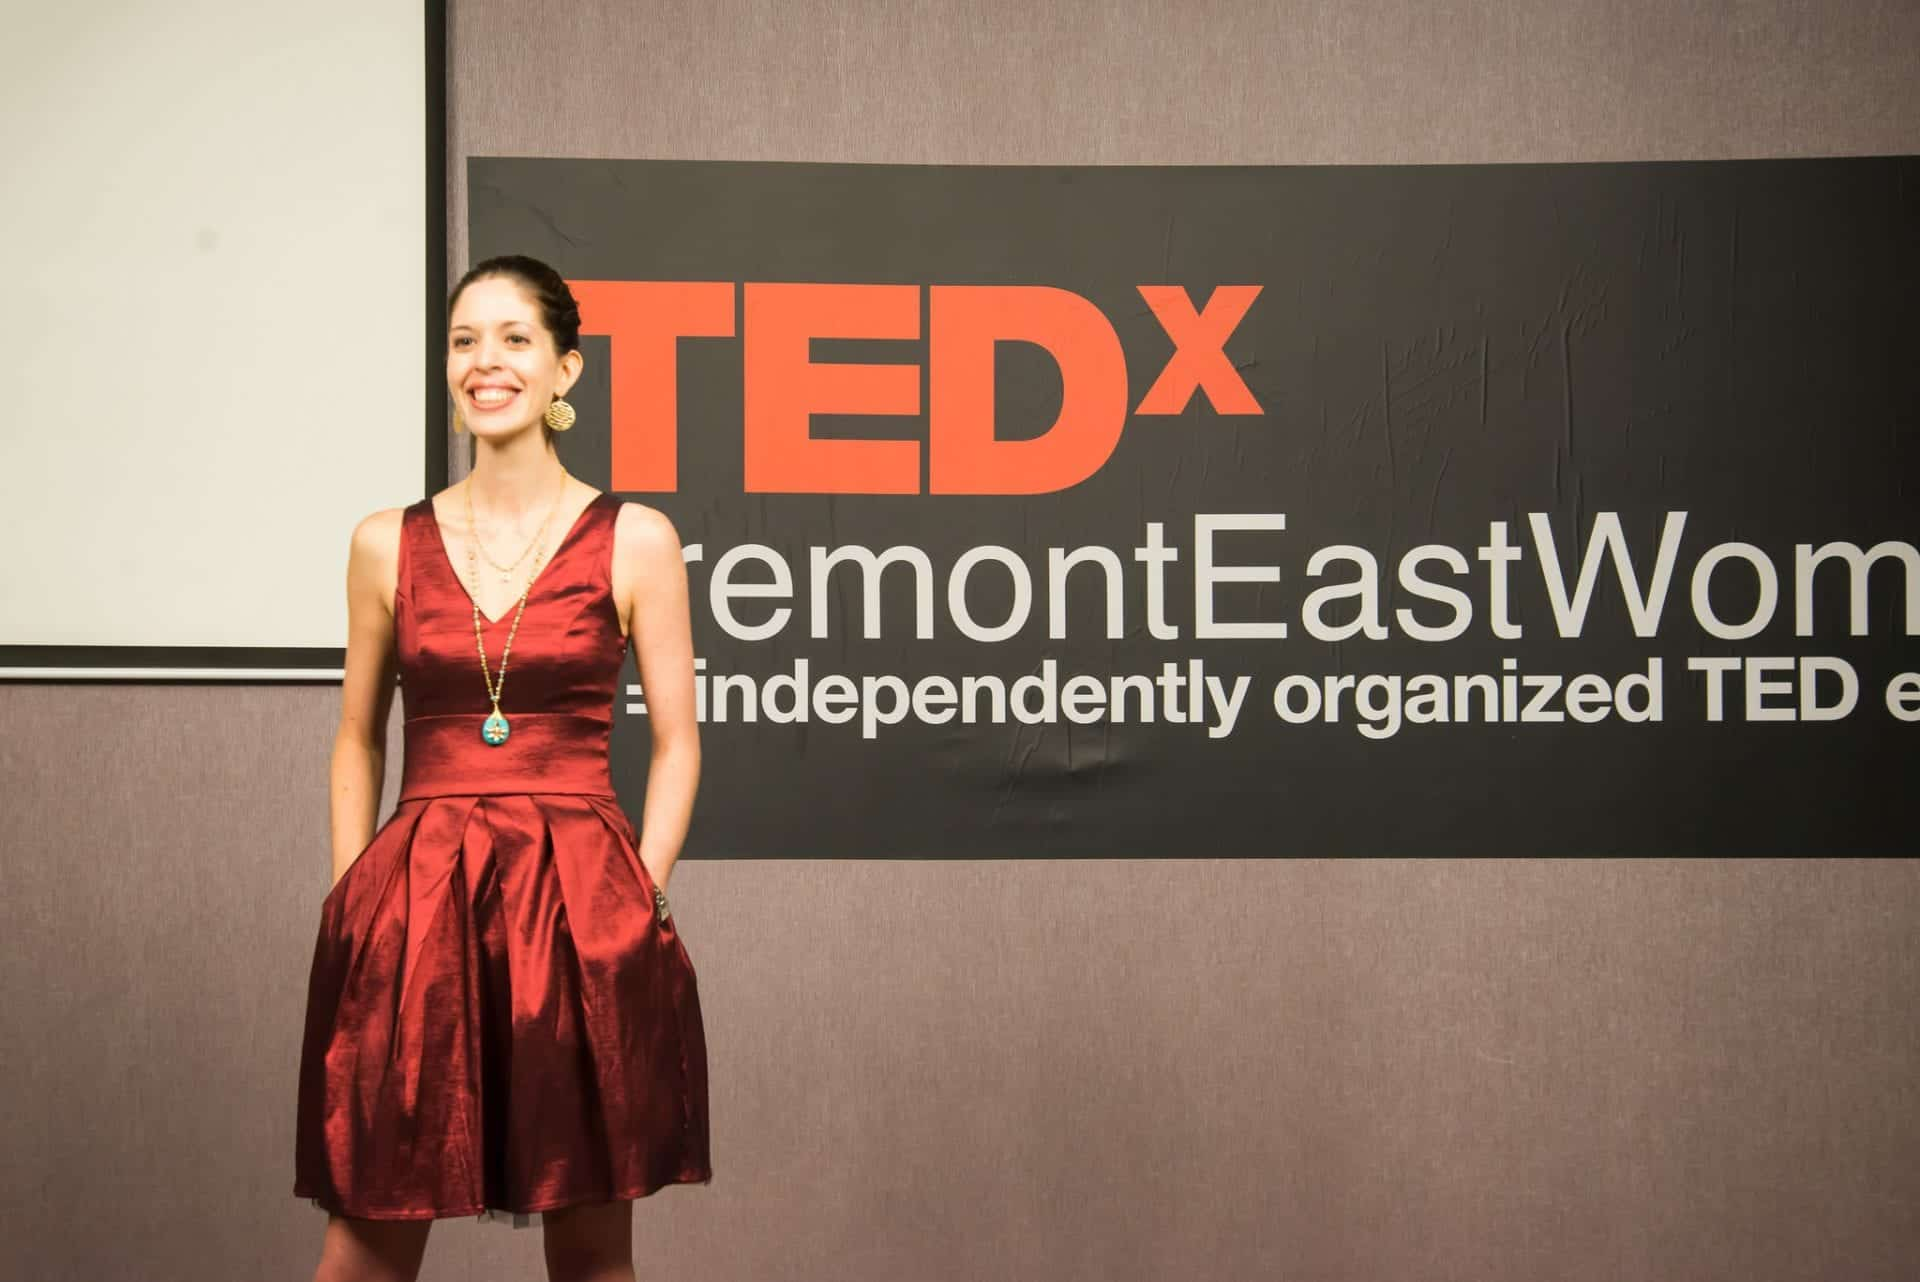 TEDx Alexia Hands in Pockets